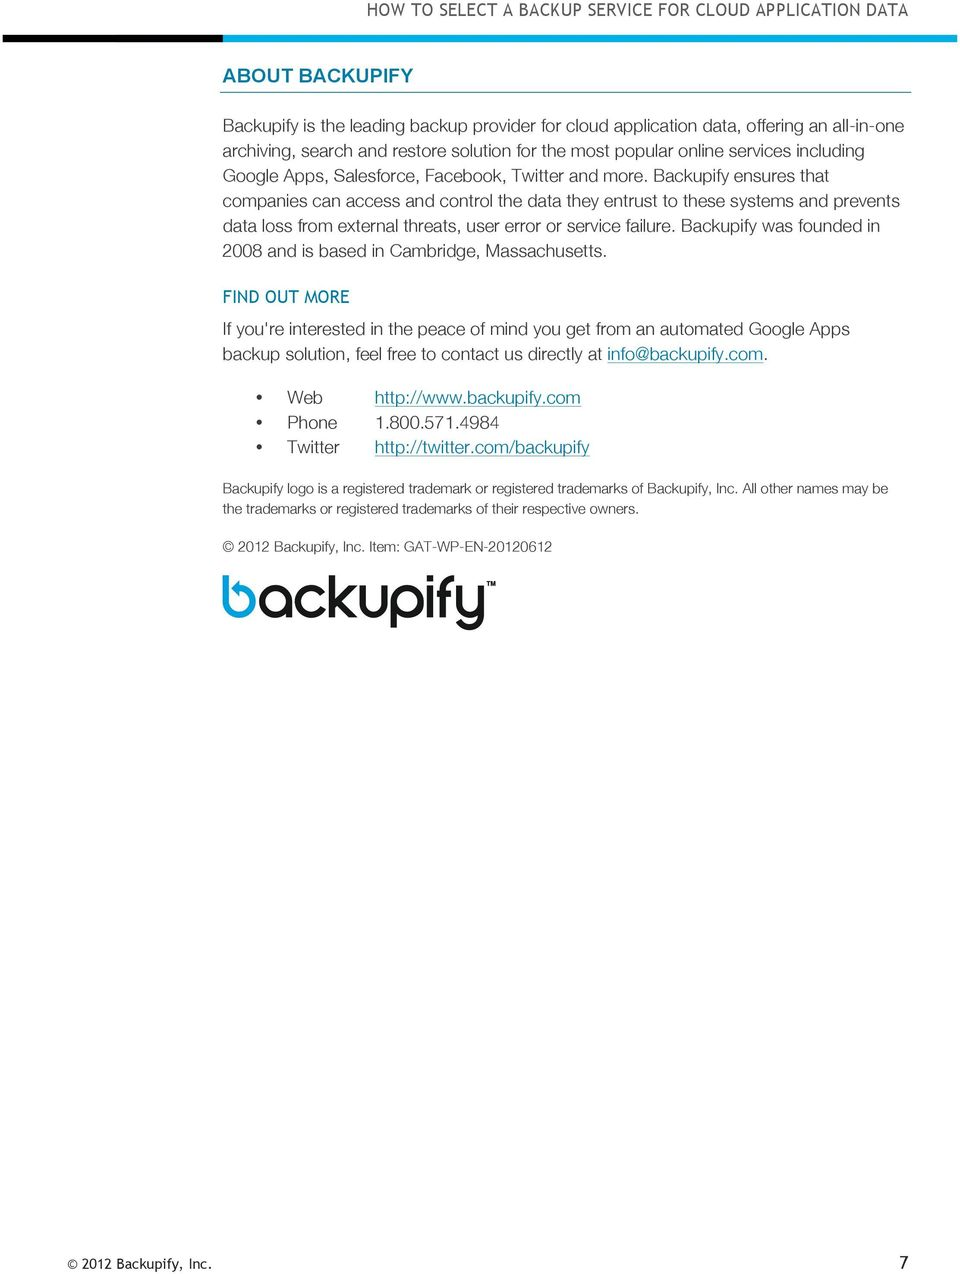 Backupify ensures that companies can access and control the data they entrust to these systems and prevents data loss from external threats, user error or service failure.